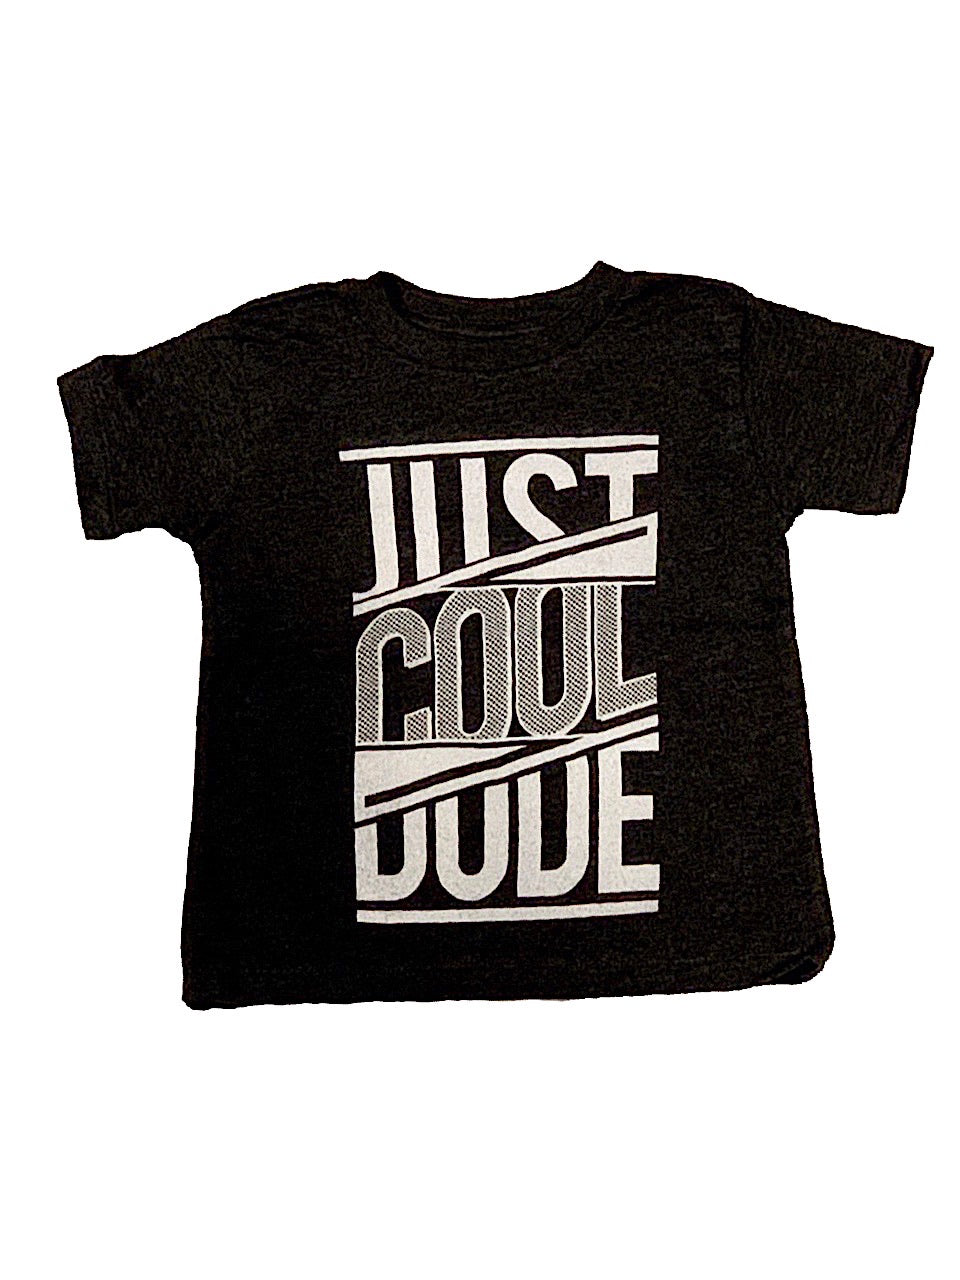 O.M.M Heather Charcoal Just Cool Dude T-Shirt